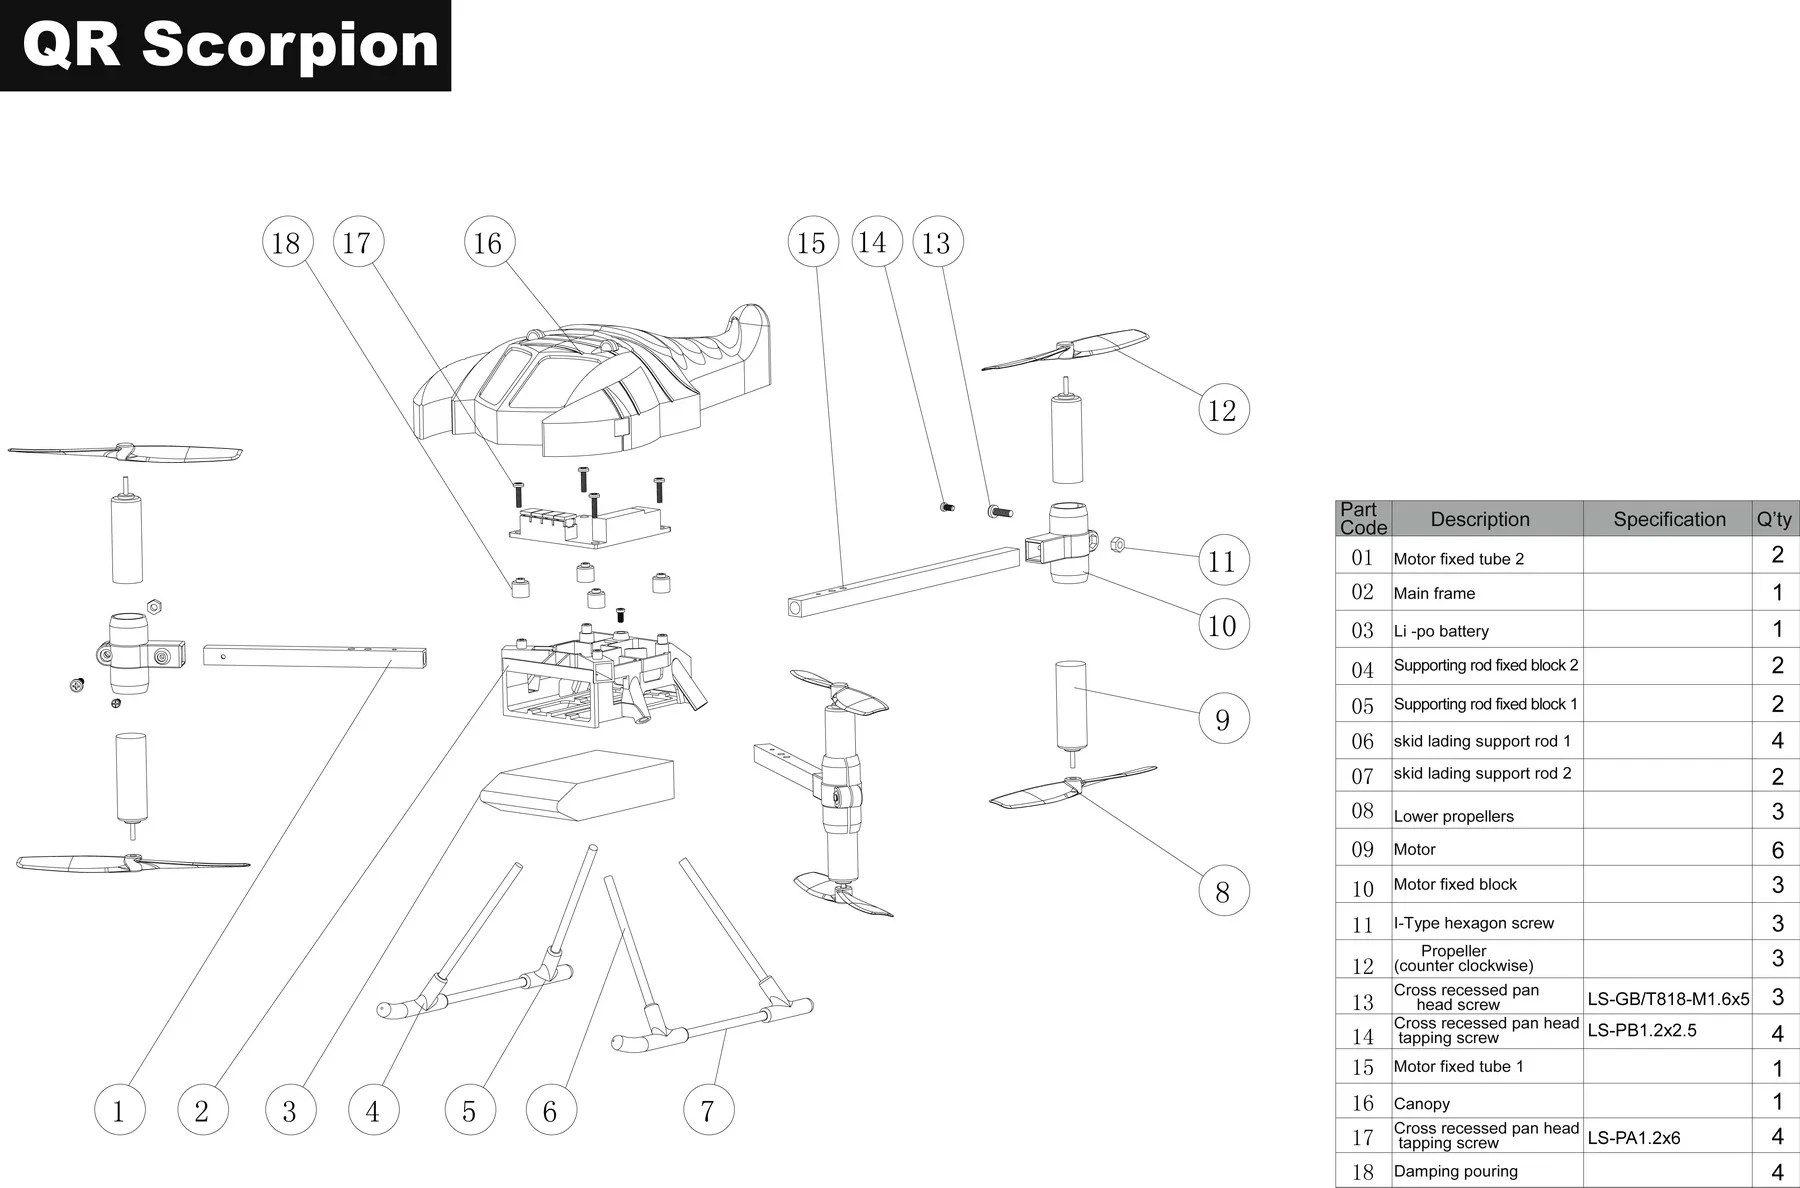 hight resolution of qr scorpion parts diagram